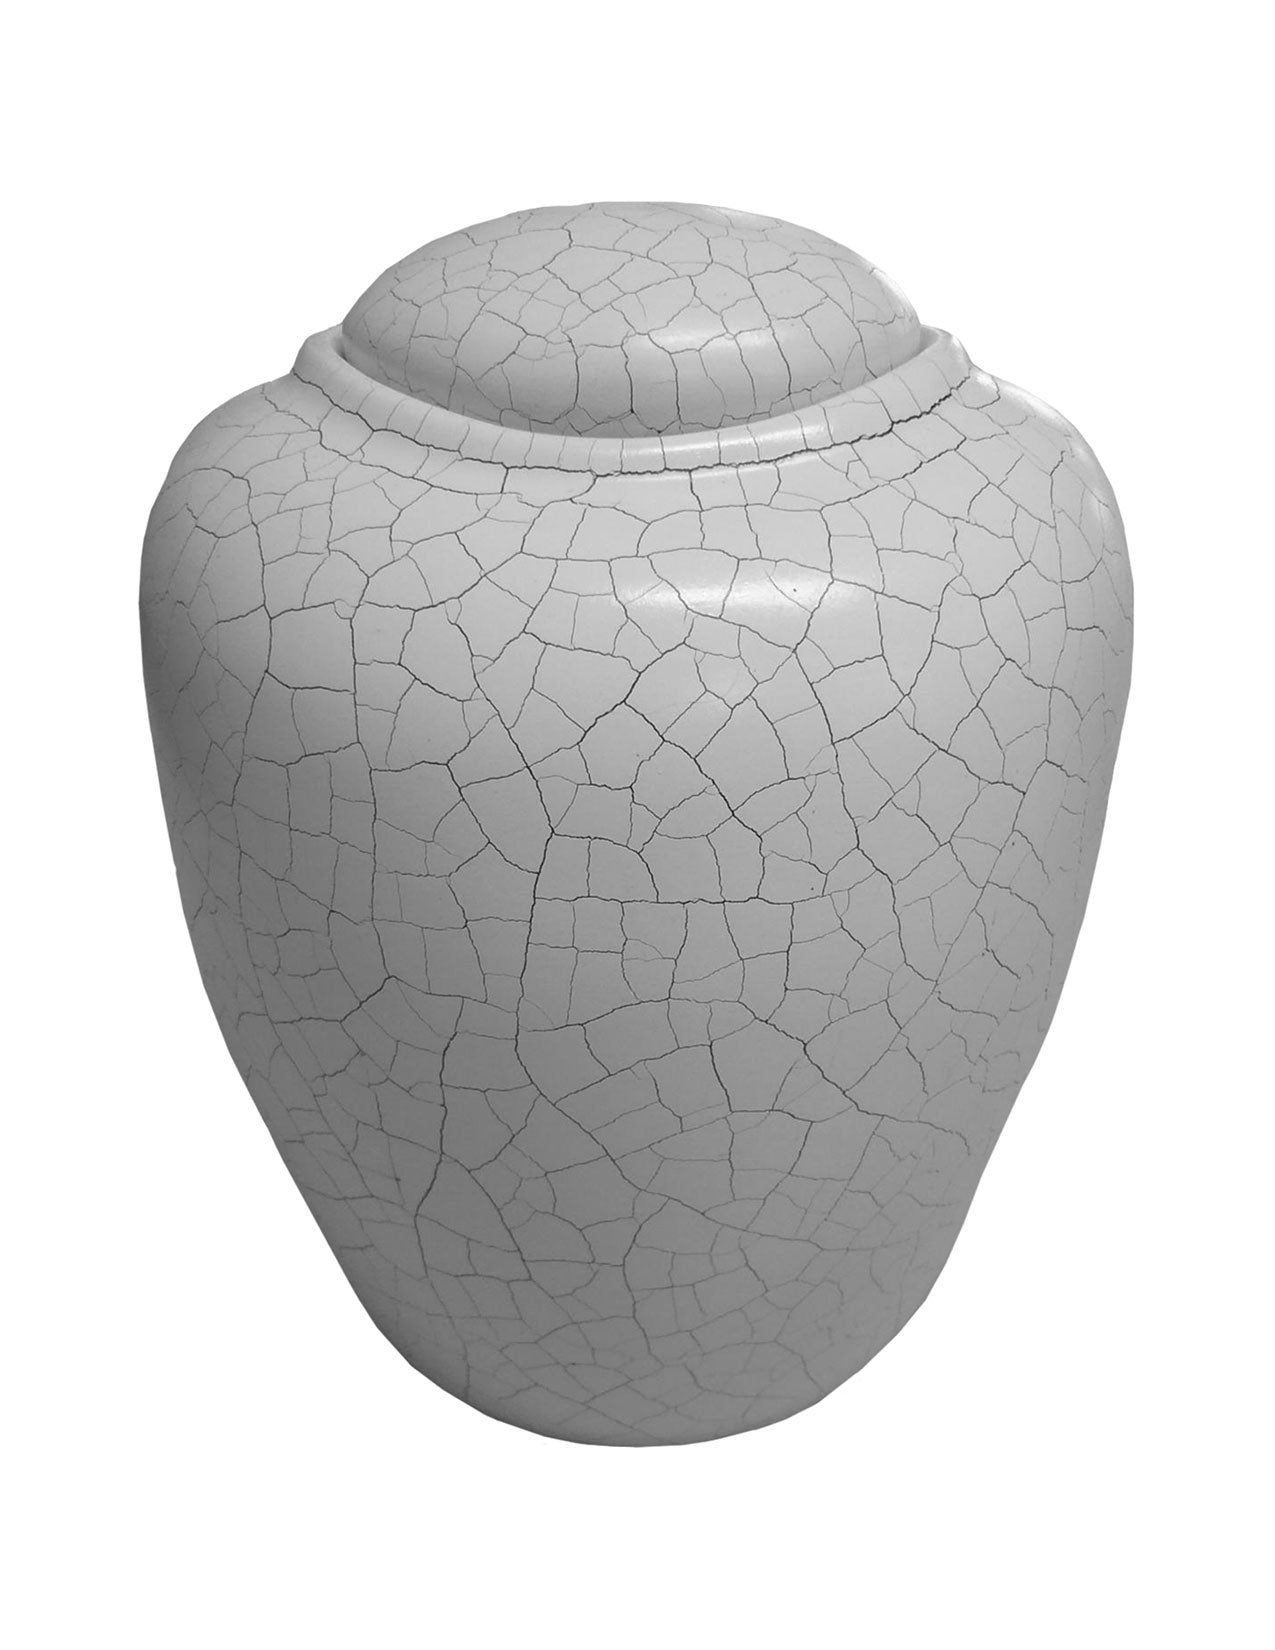 Oceane Sand & Gelatin Urns Antique White Cremation Urn